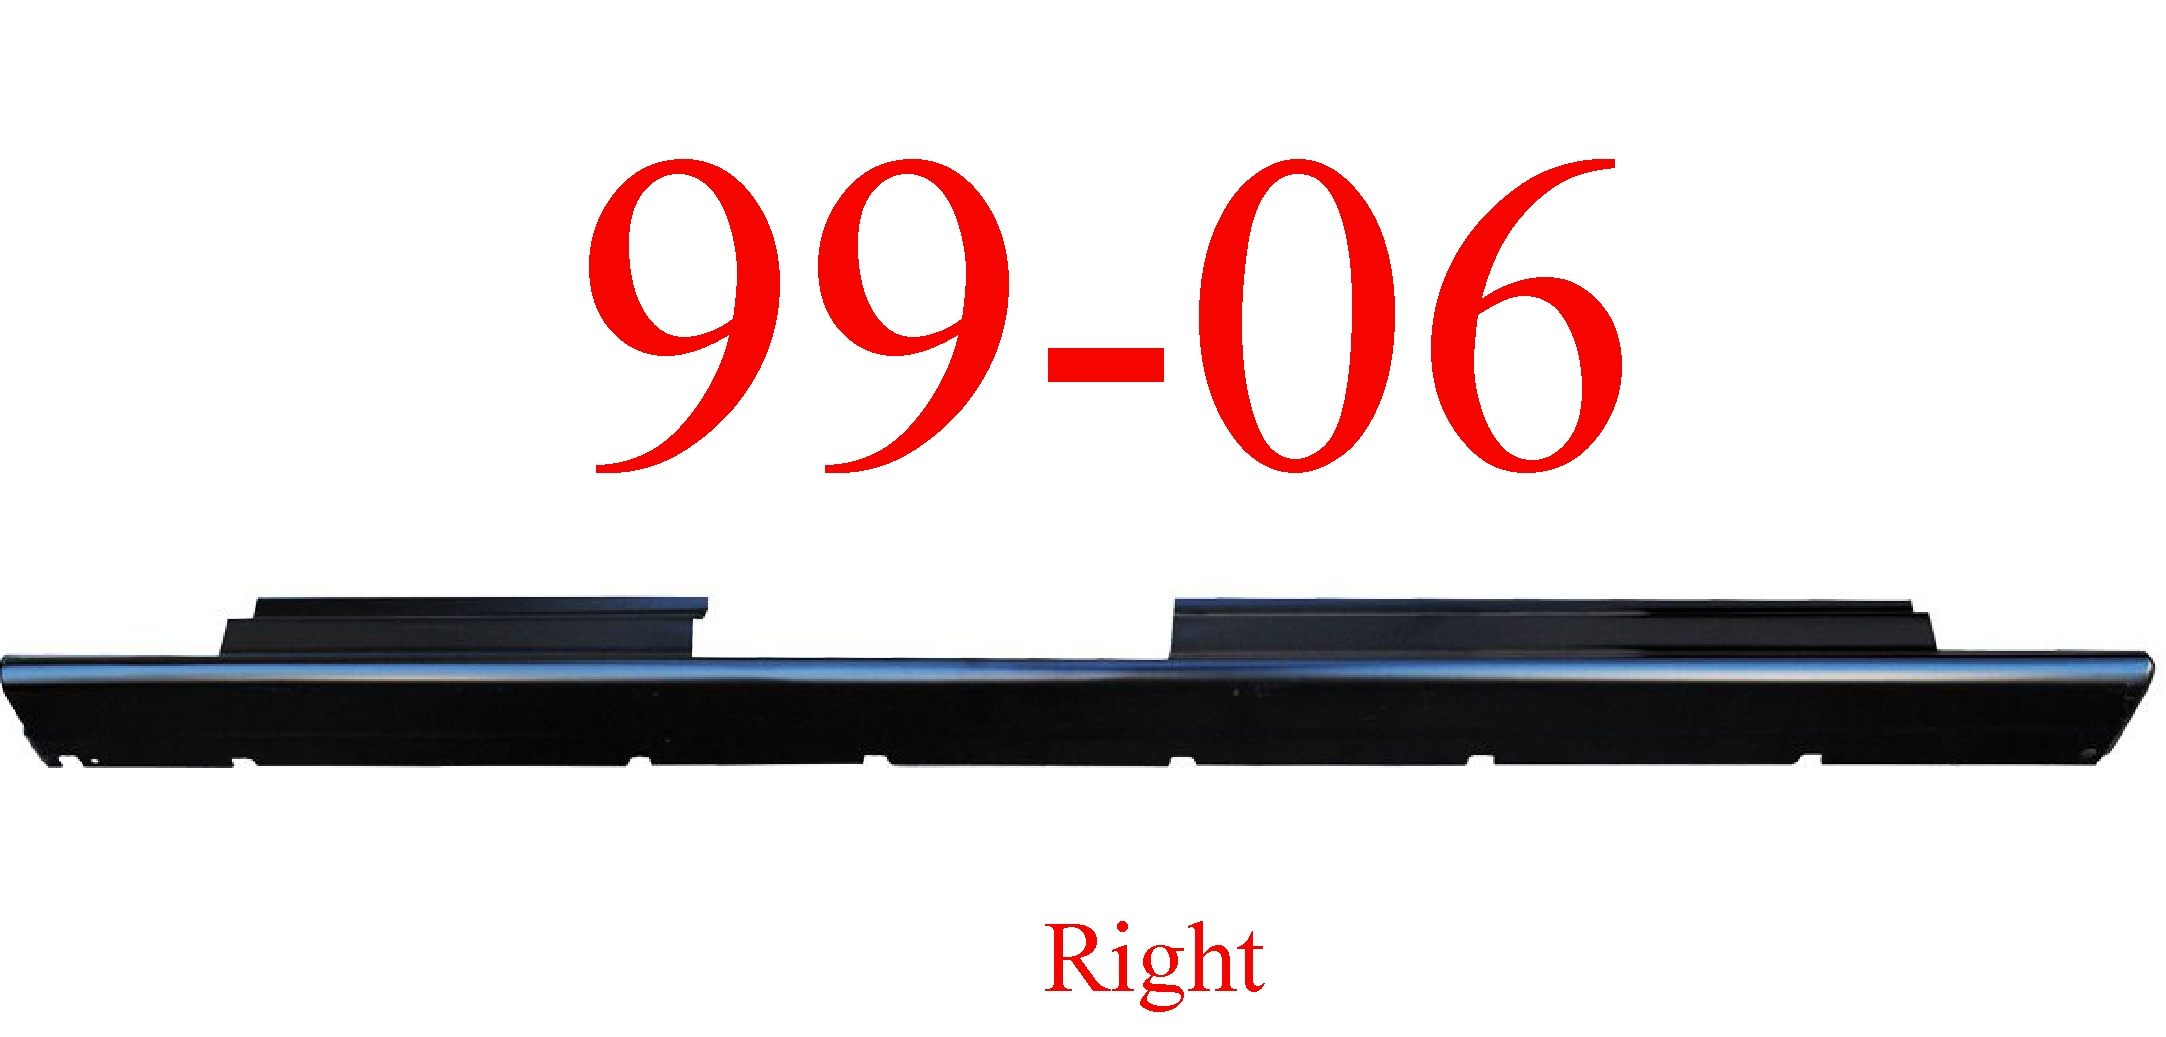 99-06 Chevy Crew Cab Right Slip-On Rocker Panel 1.4MM